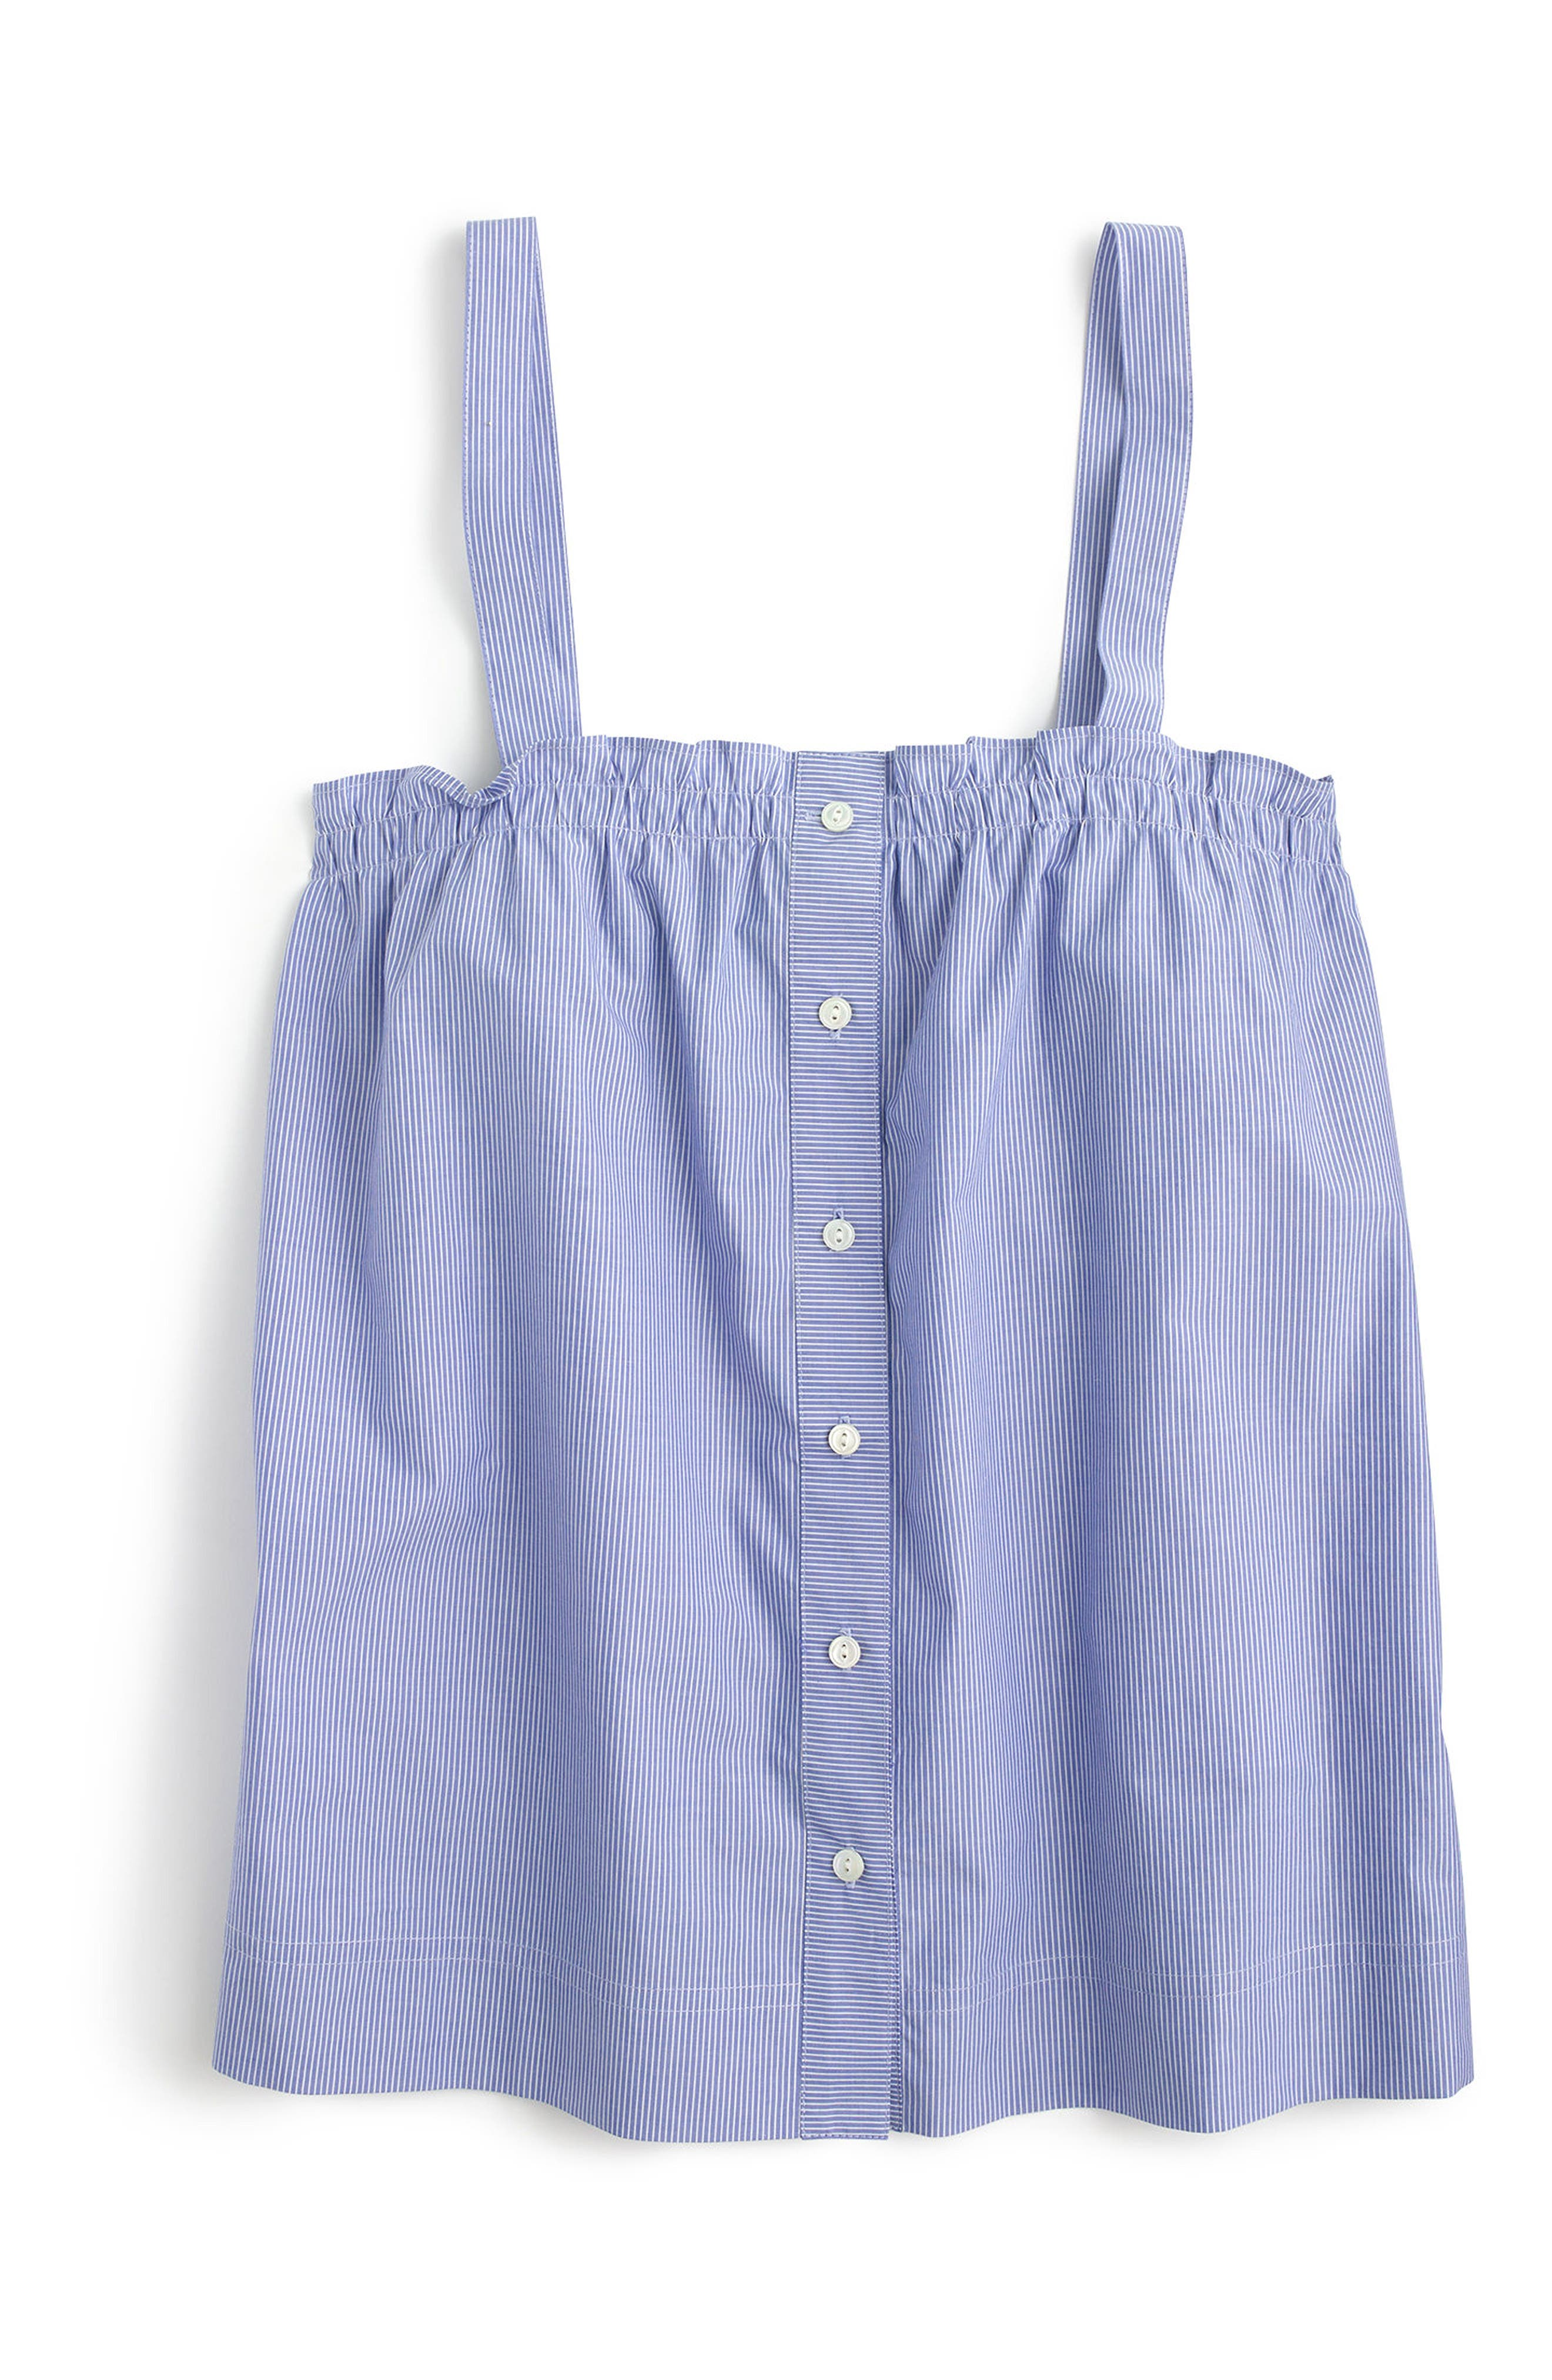 Alternate Image 1 Selected - J.Crew Button Front Ruffle Top (Regular & Petite)